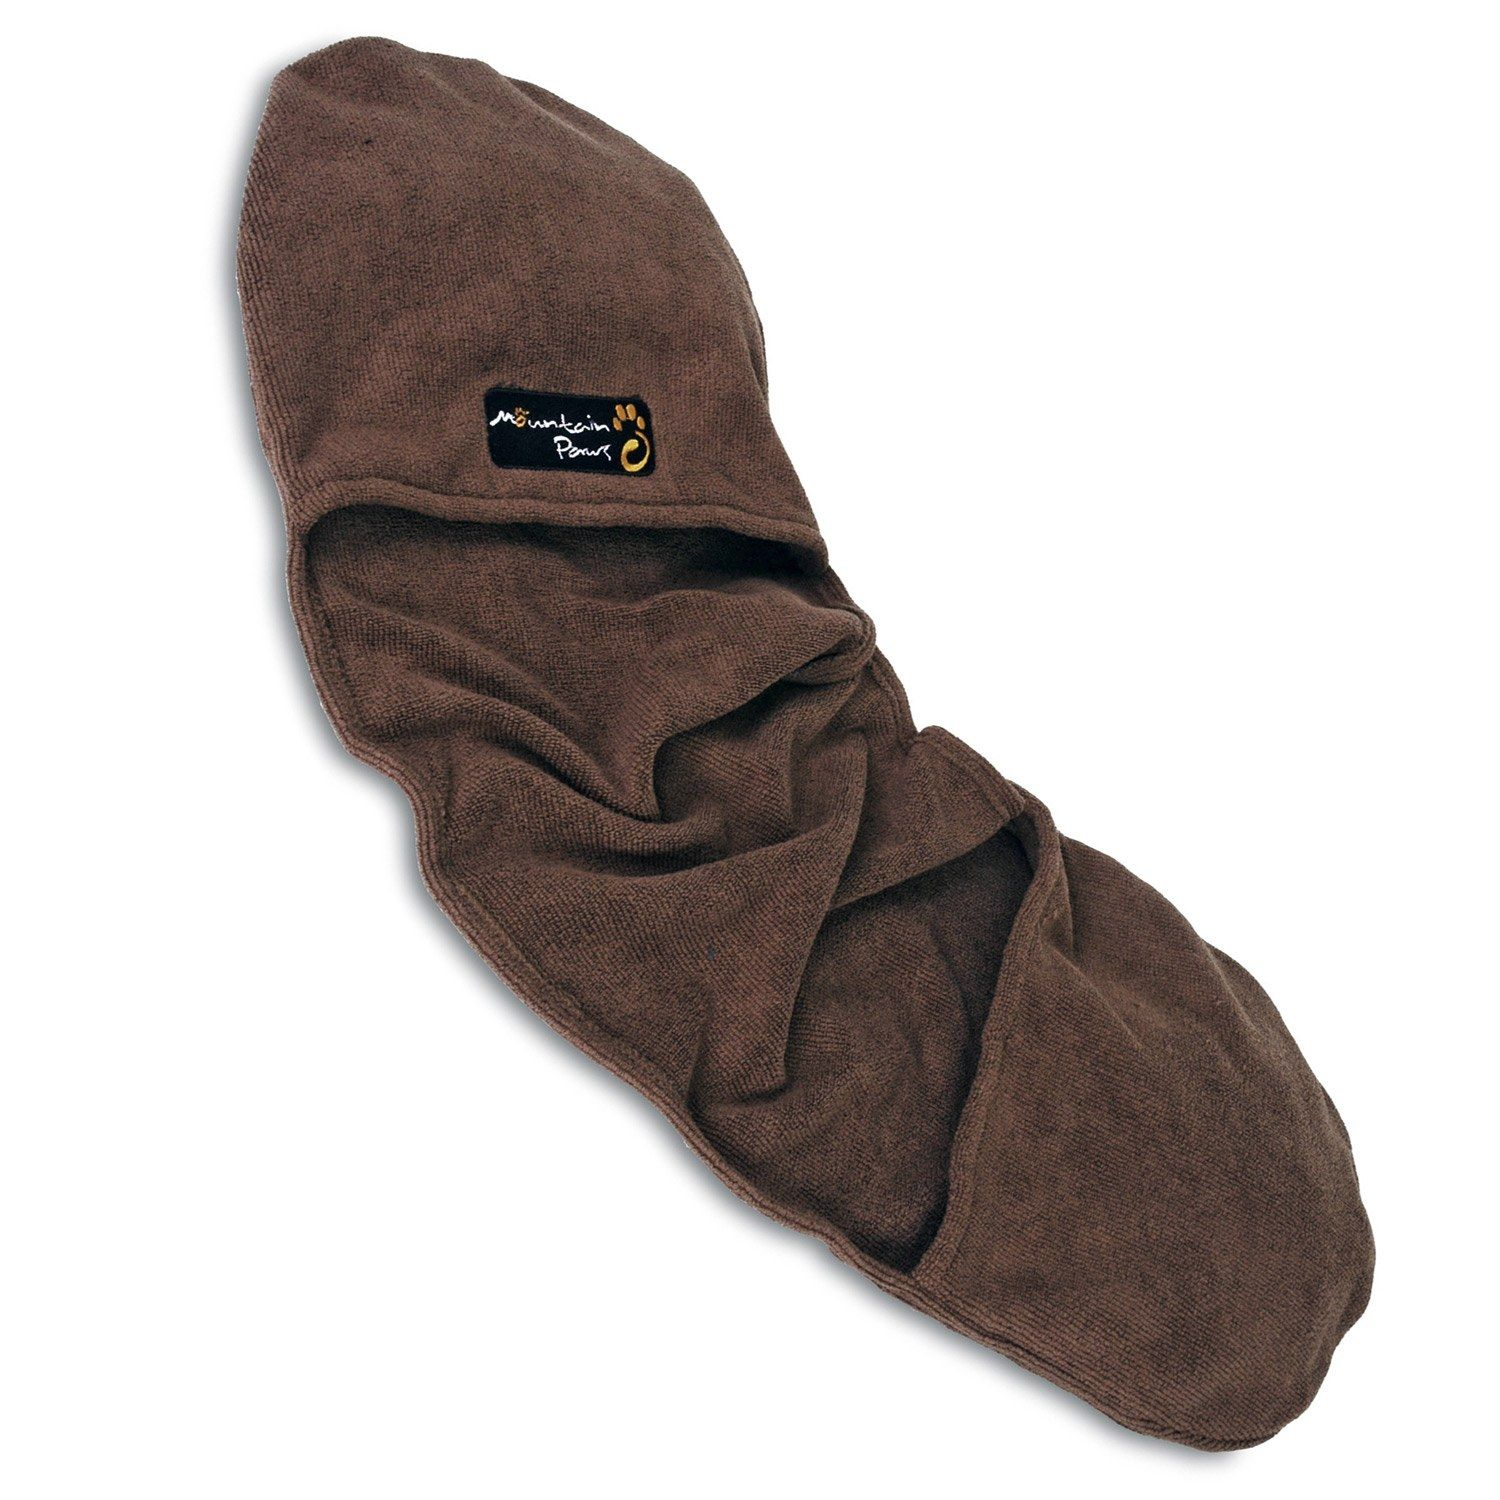 What a cool idea:  Mountain Paws Muddy Glove Dog Towel